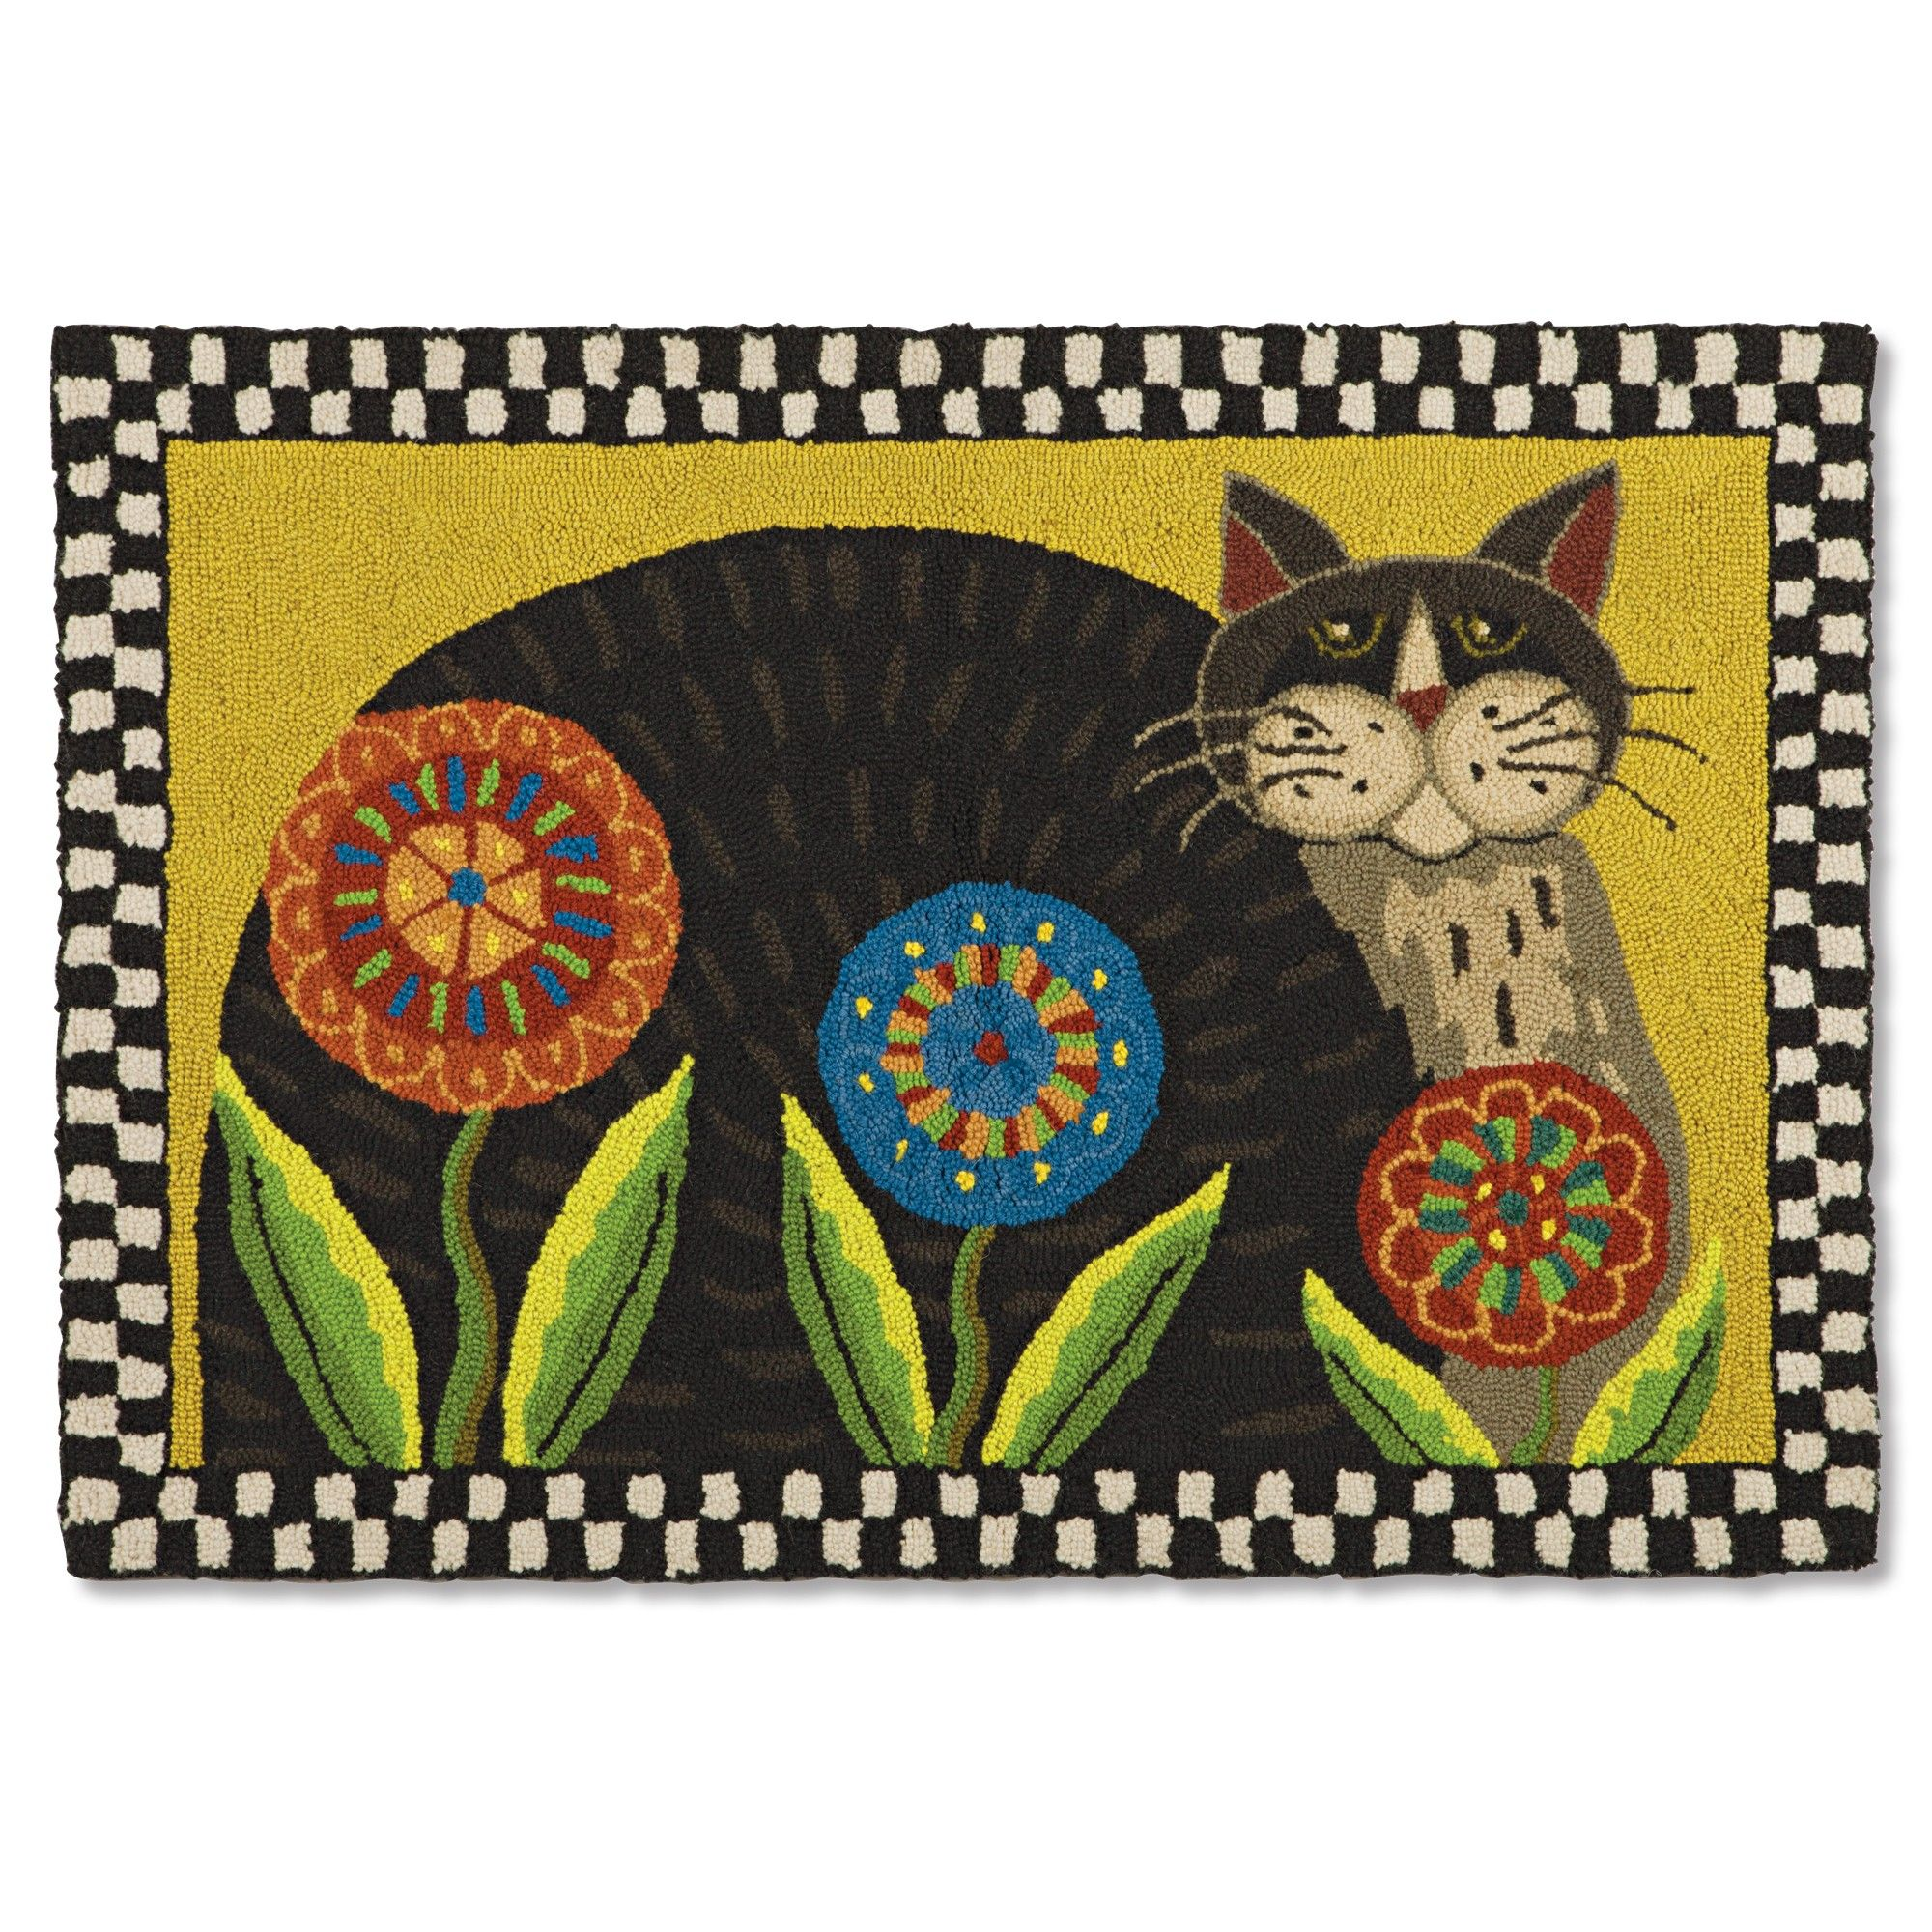 Image Detail For -Cat & Penny Flowers Rug